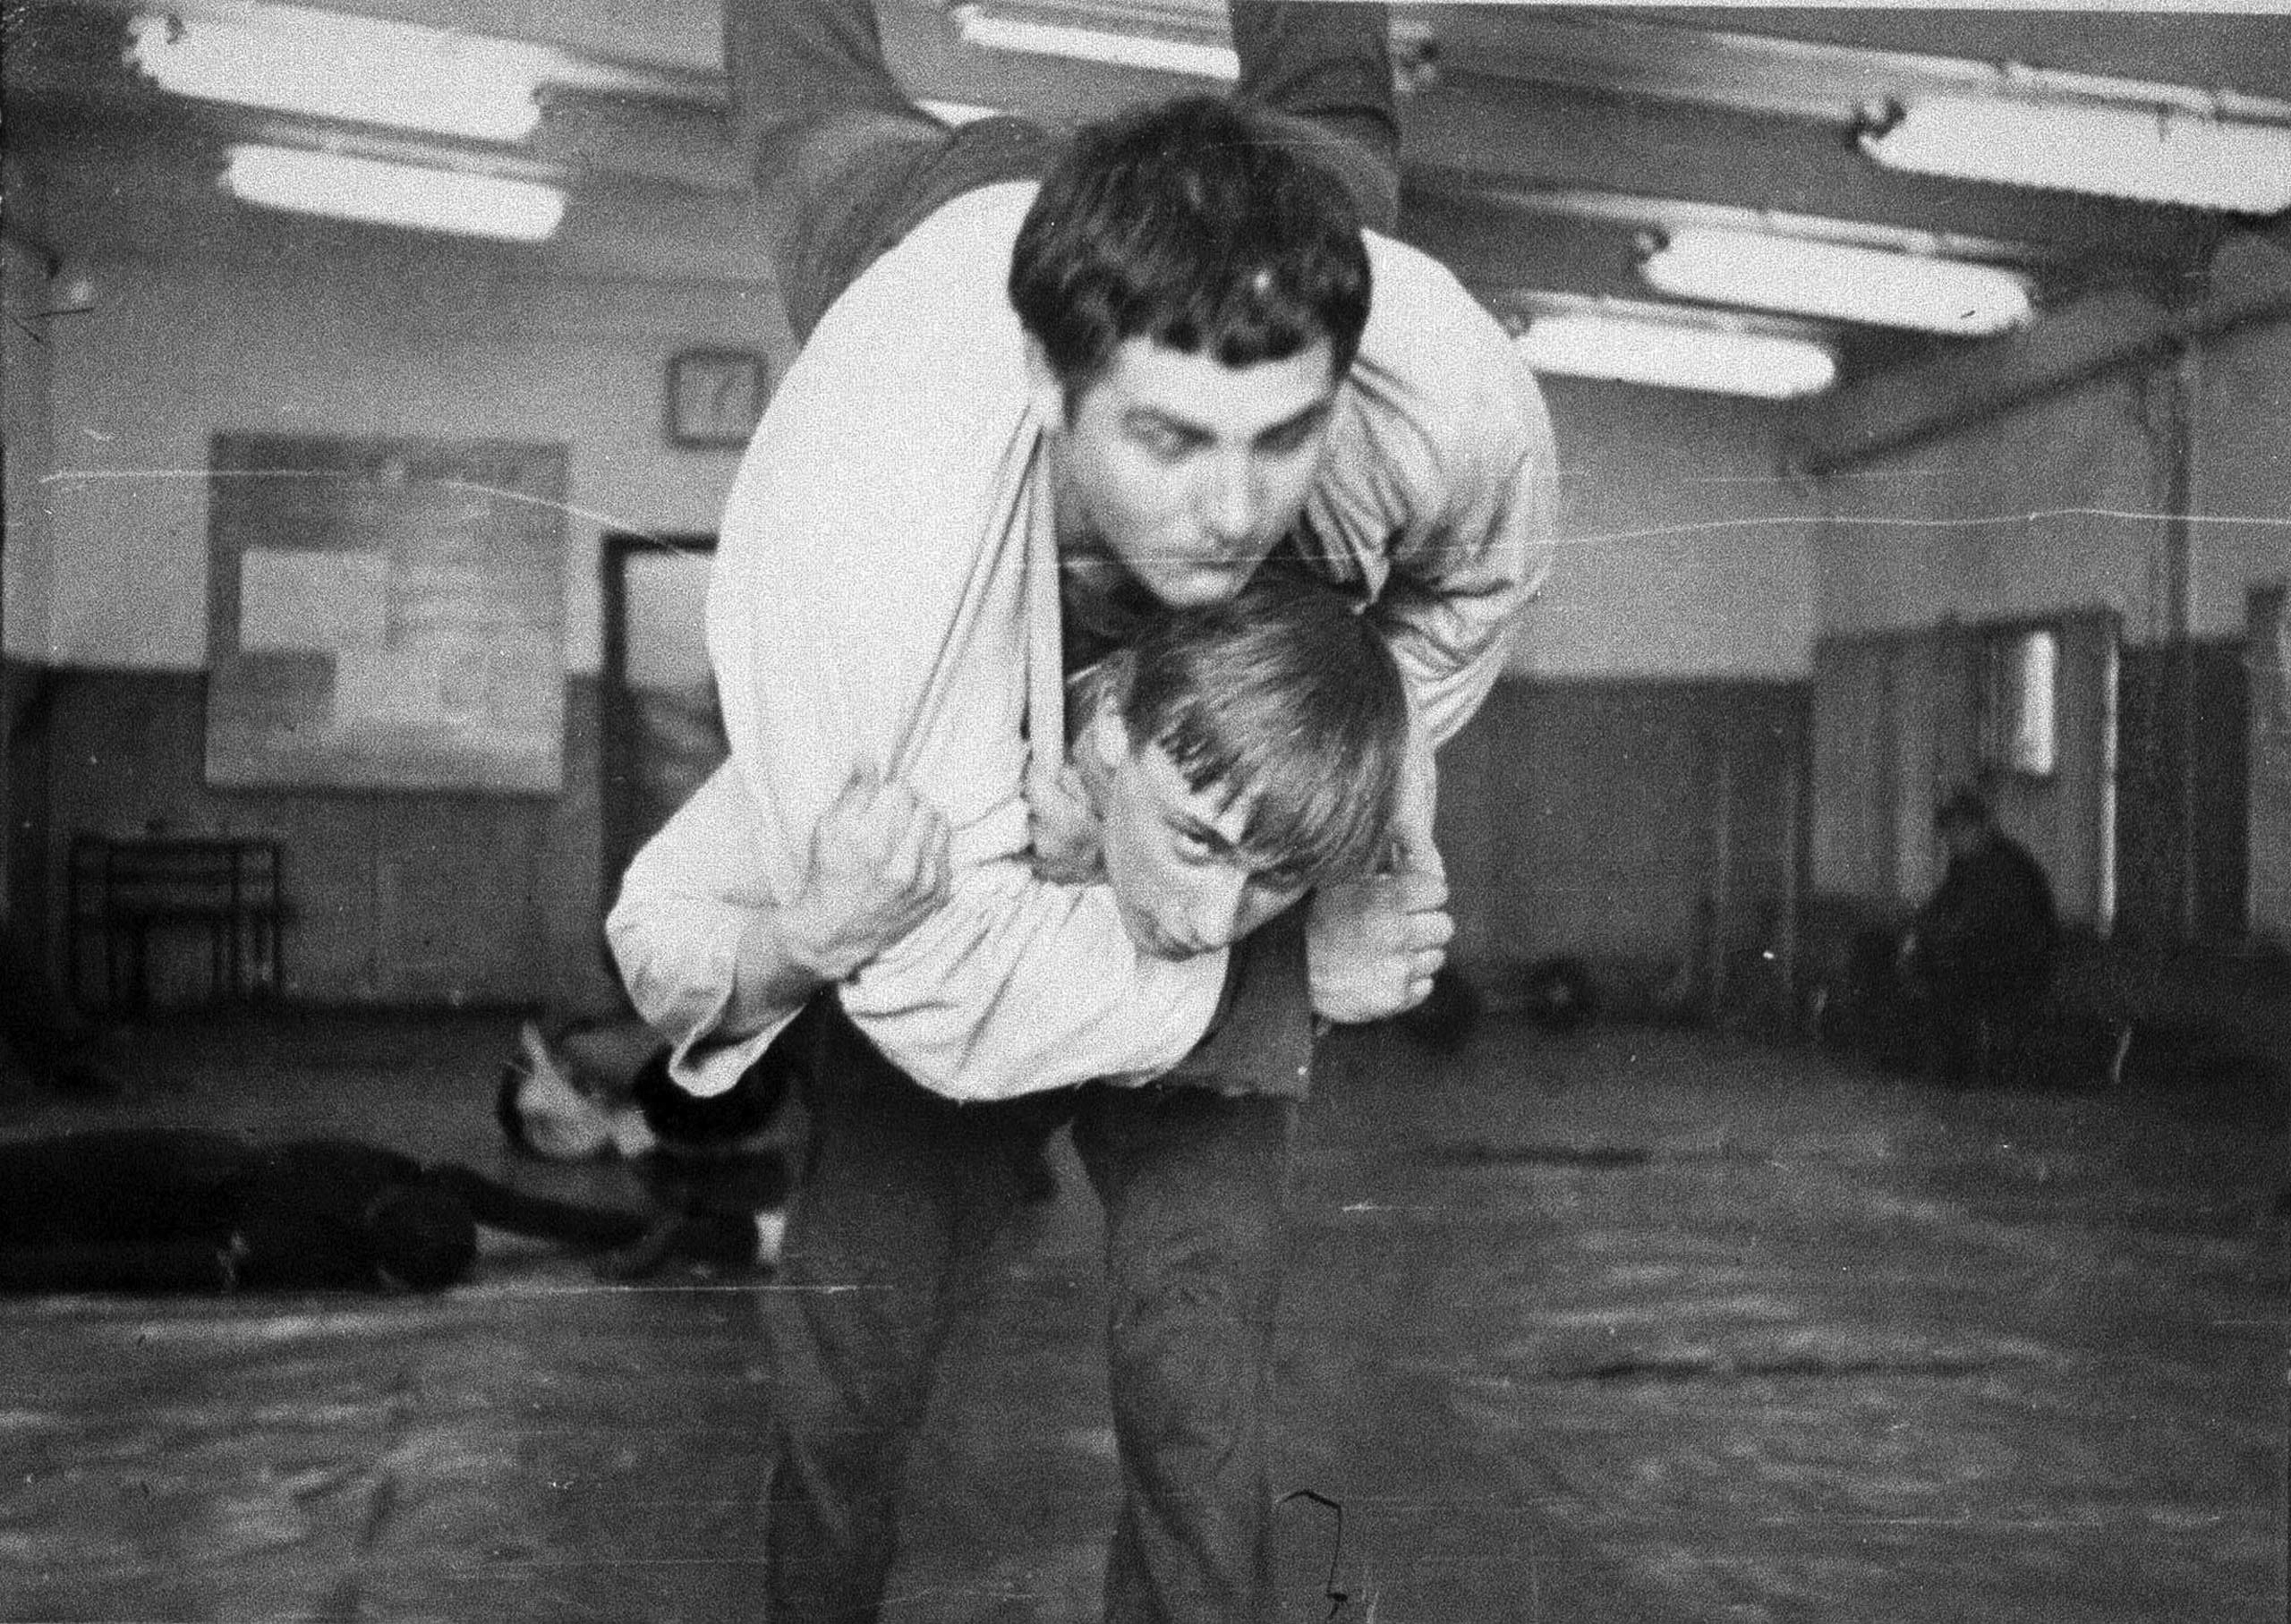 A young Vladimir Putin during judo training with fellow pupil Vassily Shestakov in St. Petersburg, then known as Leningrad, in 1971.